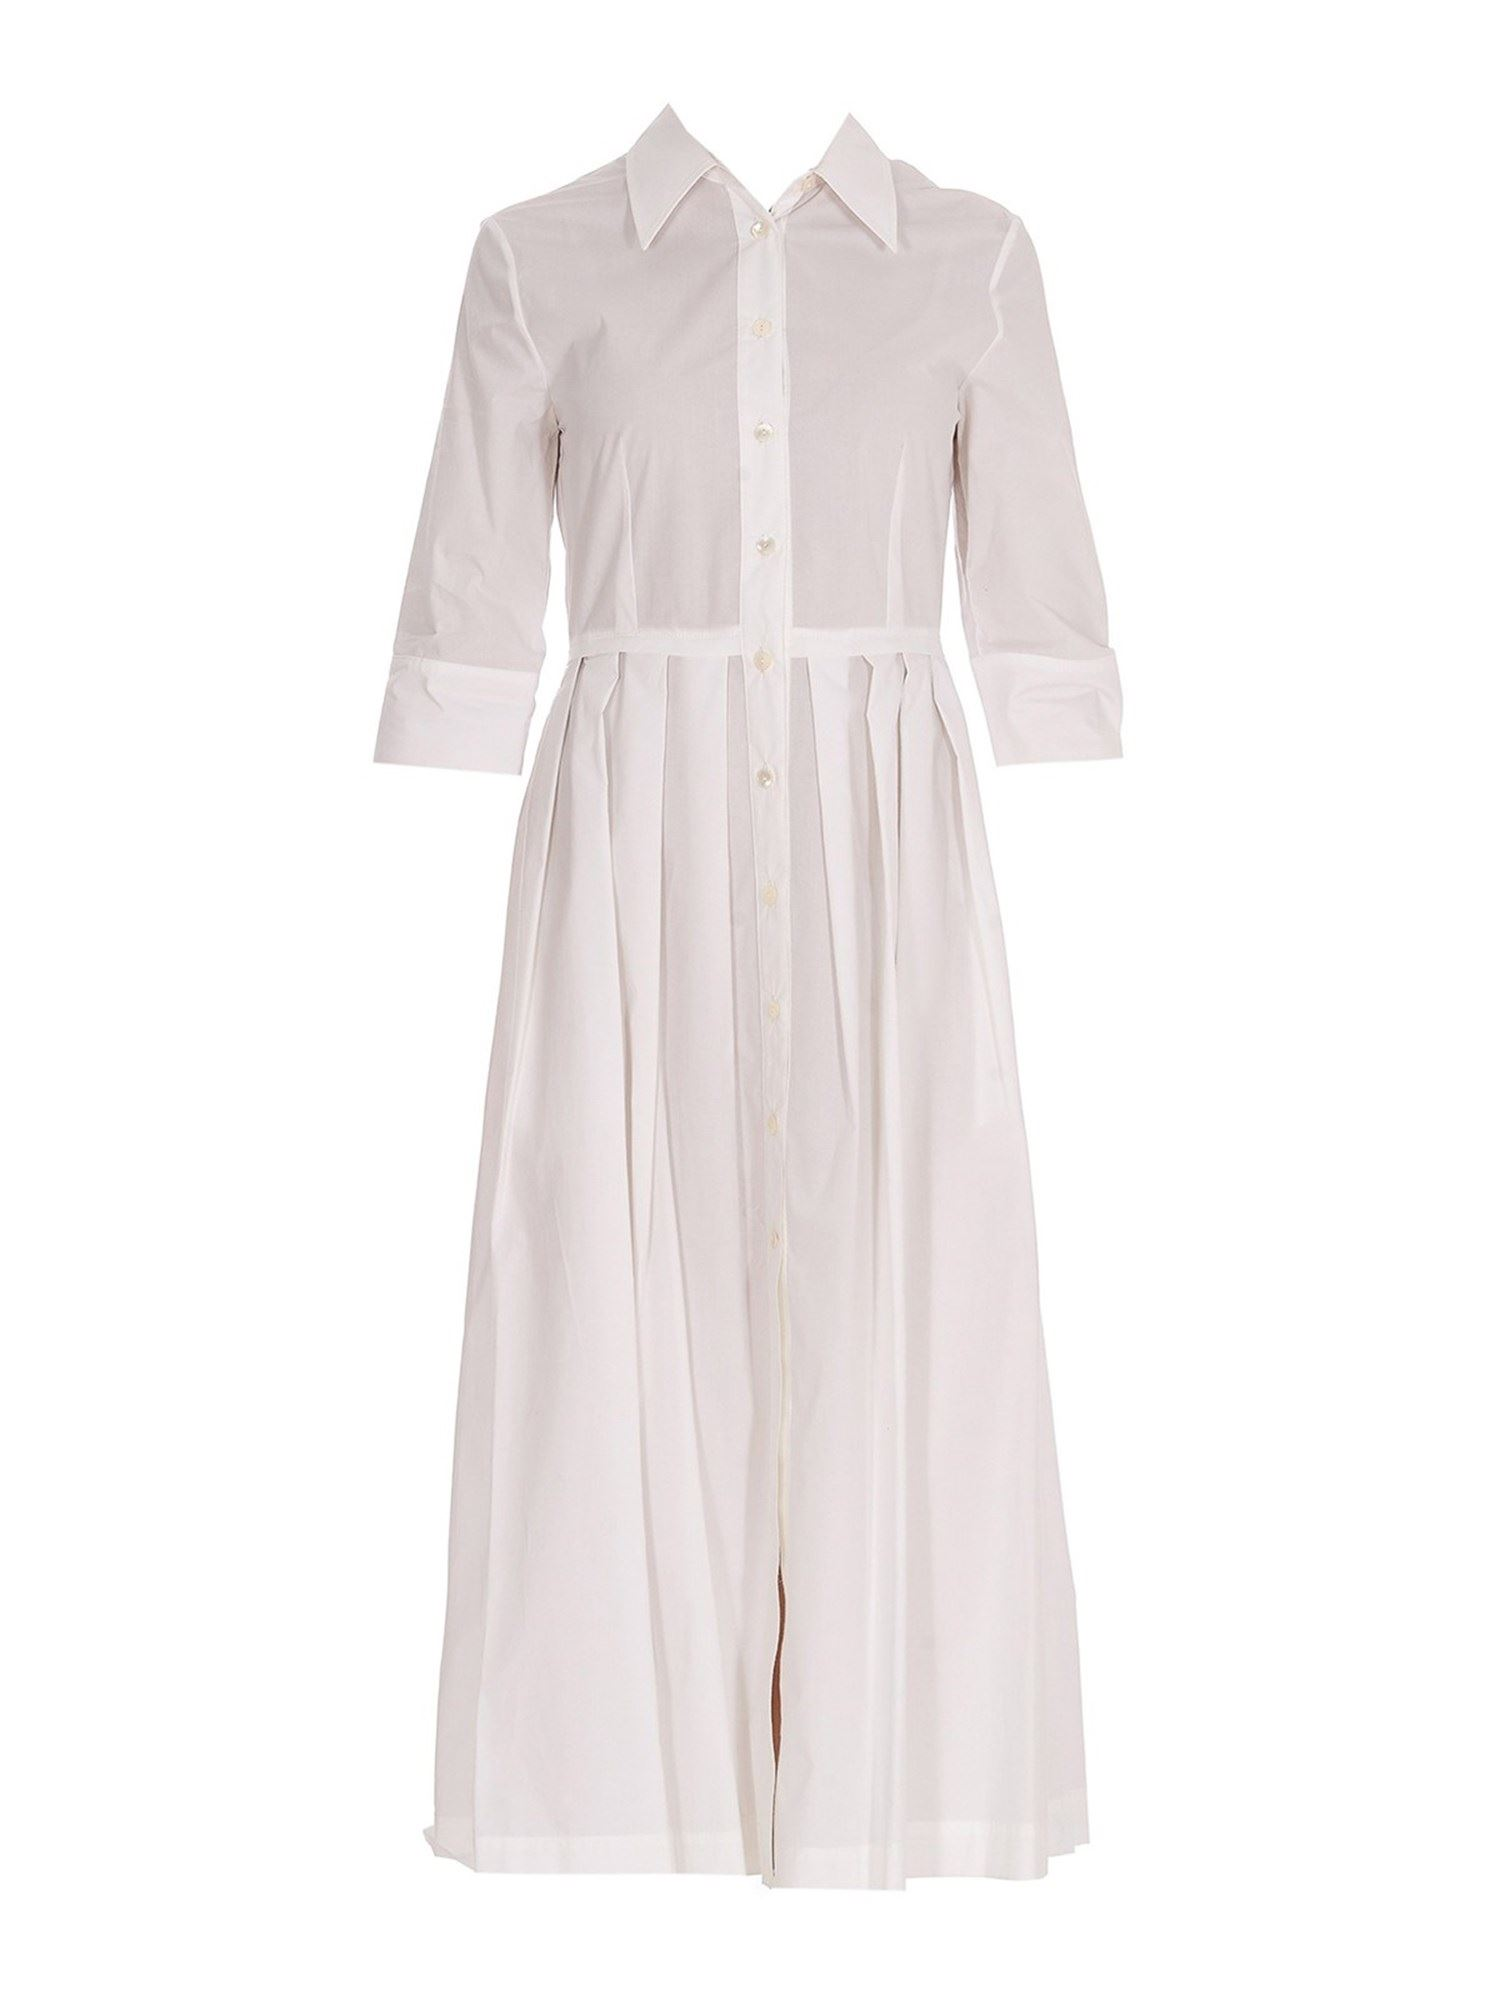 Jucca COTTON SHIRT DRESS IN WHITE